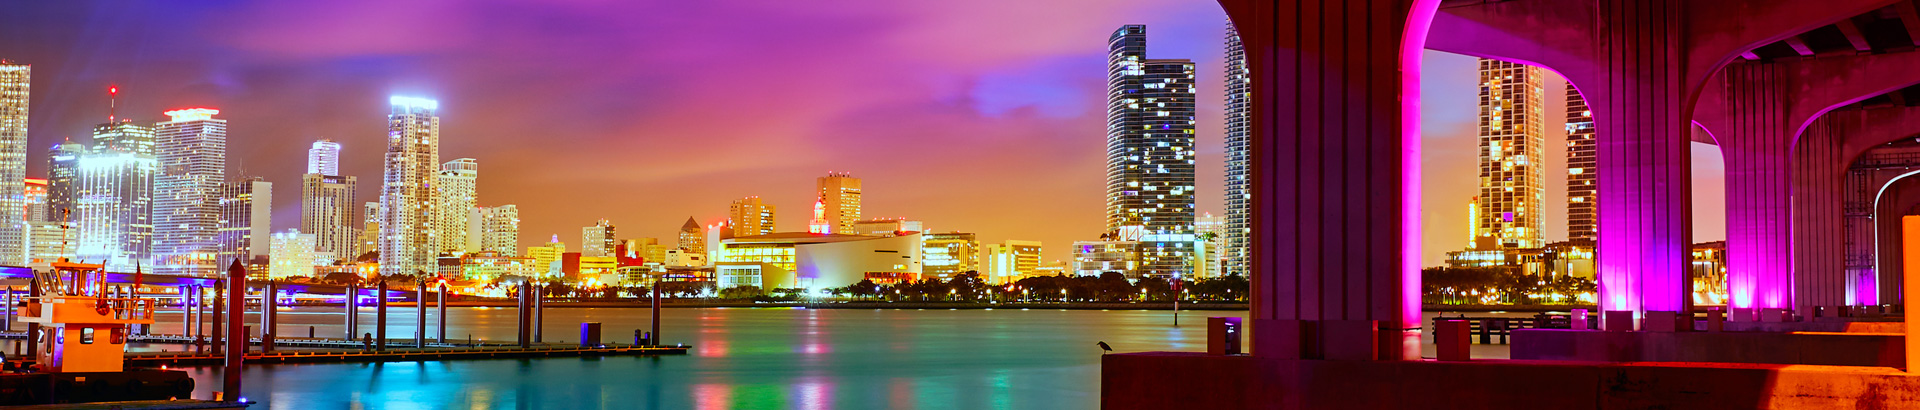 miami-downtown-at-night-2